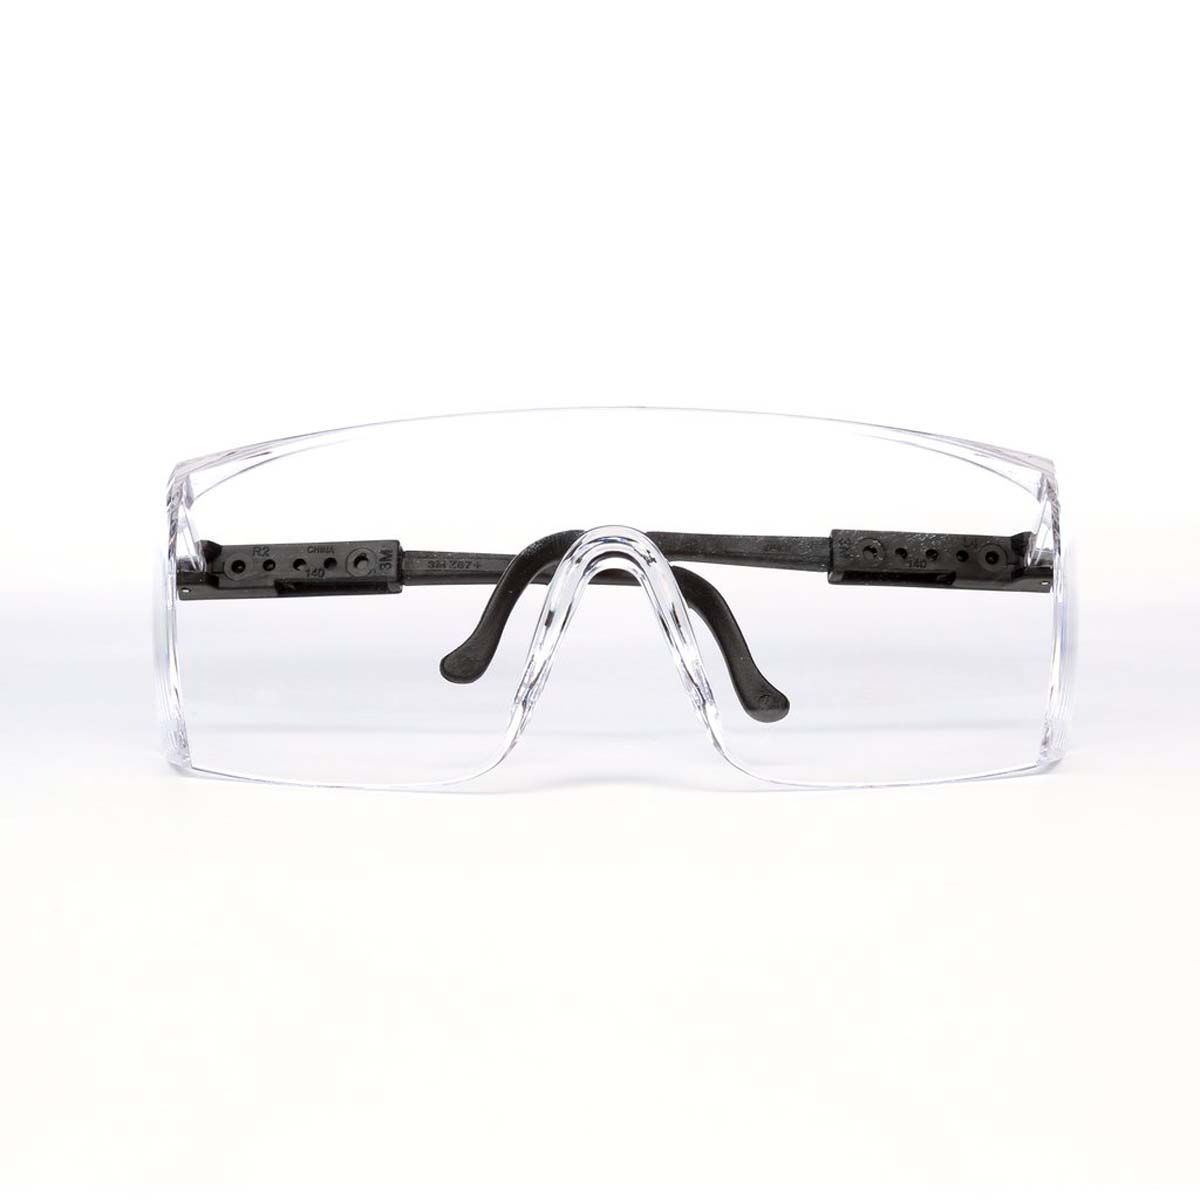 3M Seepro Plus Fighter Protective Eyewear 15957-00000-100 Clear Lens, Black Temple